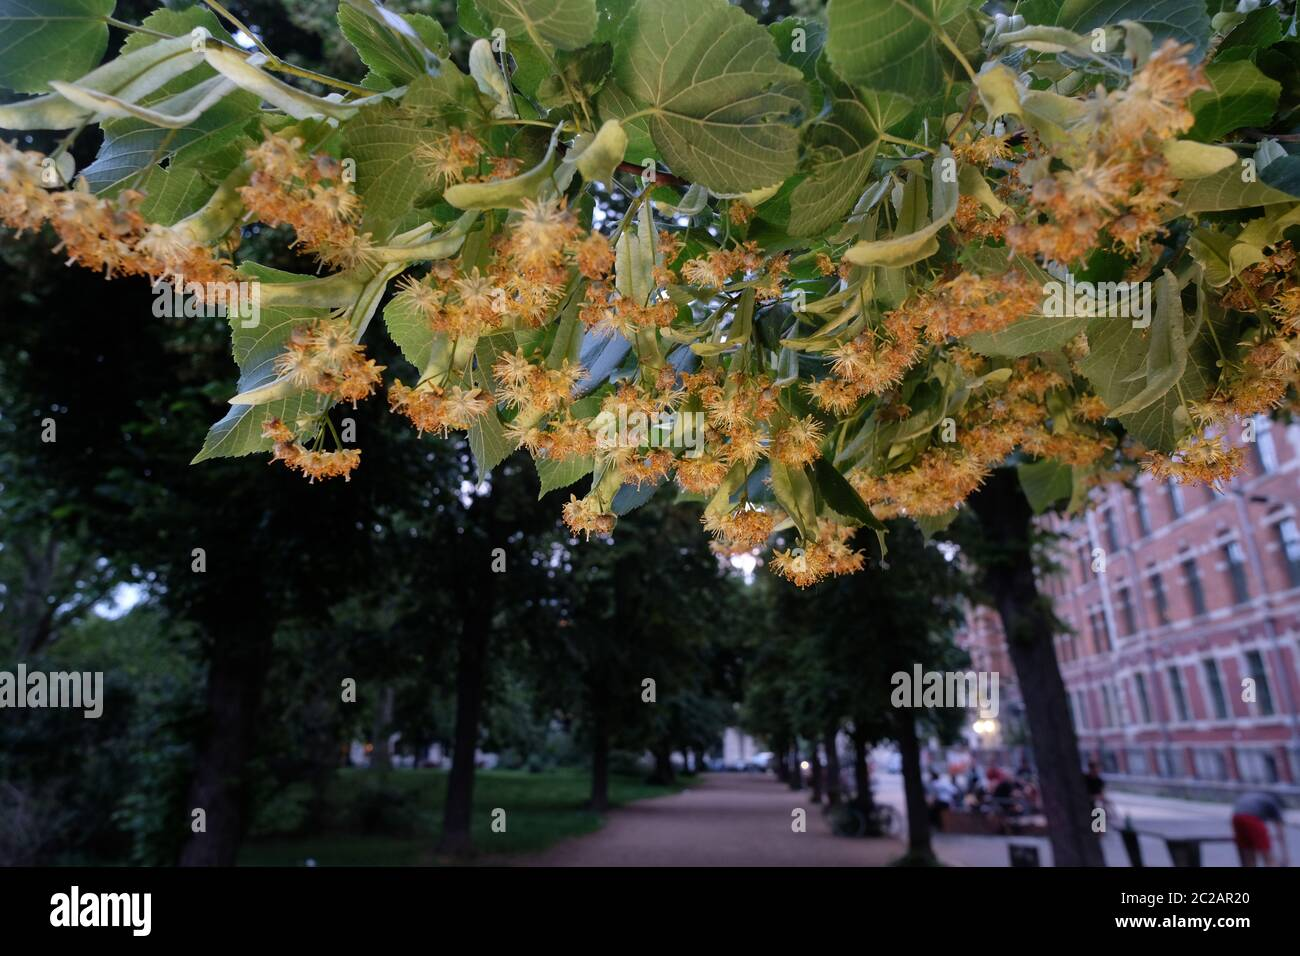 Leipzig, Germany. 16th June, 2020. Flowers of the large-leaved linden (Tilia platyphyllos) in a green area. Credit: Sebastian Willnow/dpa-Zentralbild/ZB/dpa/Alamy Live News Stock Photo